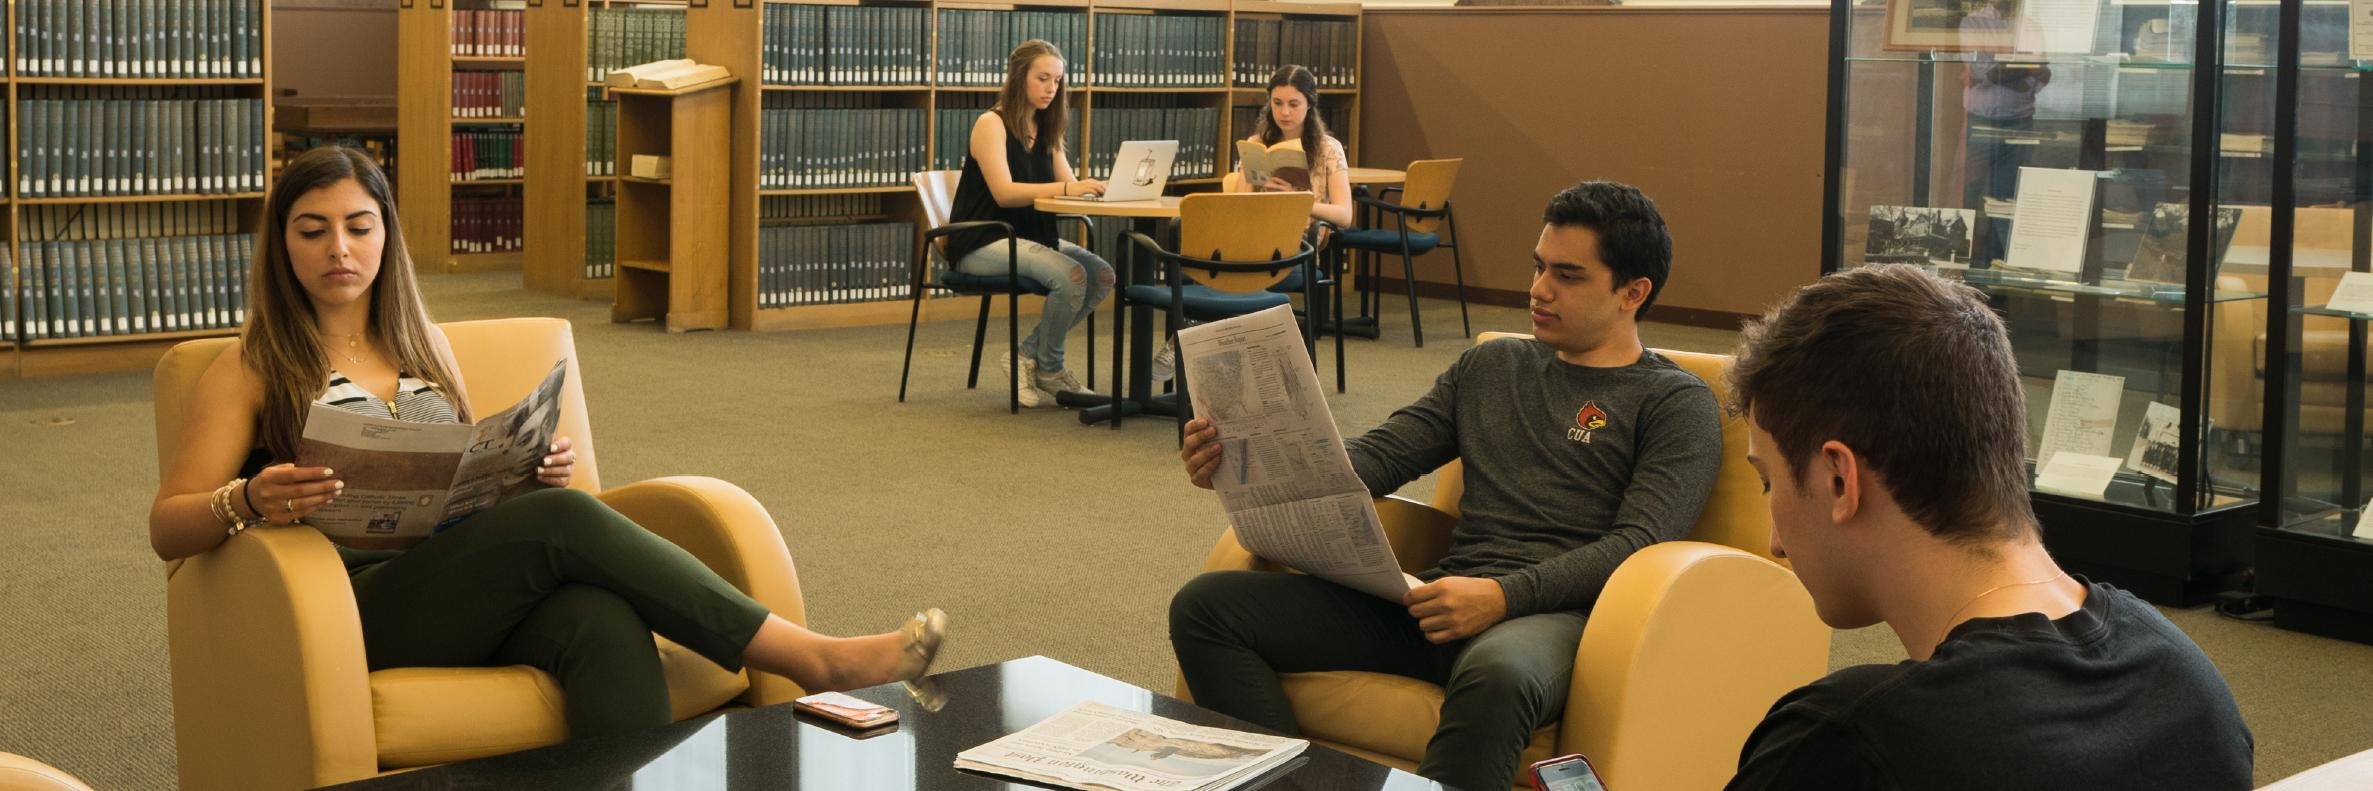 Students in Mullen Library